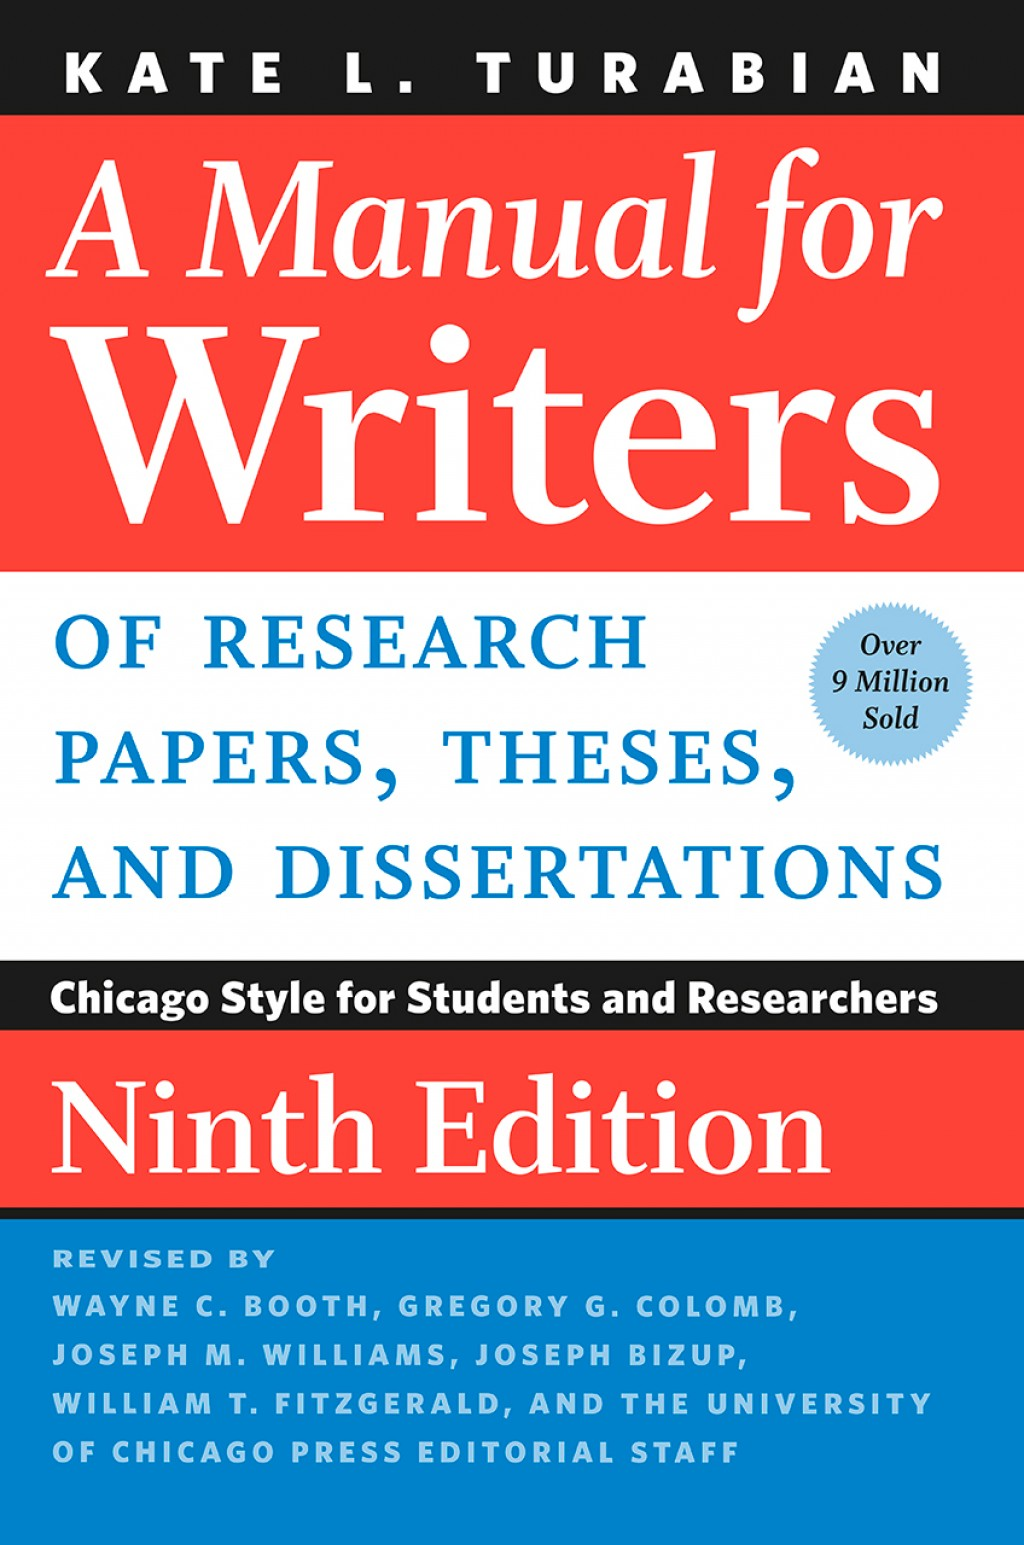 001 Manual For Writers Of Research Papers Theses And Dissertations Paper Magnificent A Amazon 9th Edition Pdf 8th 13 Large